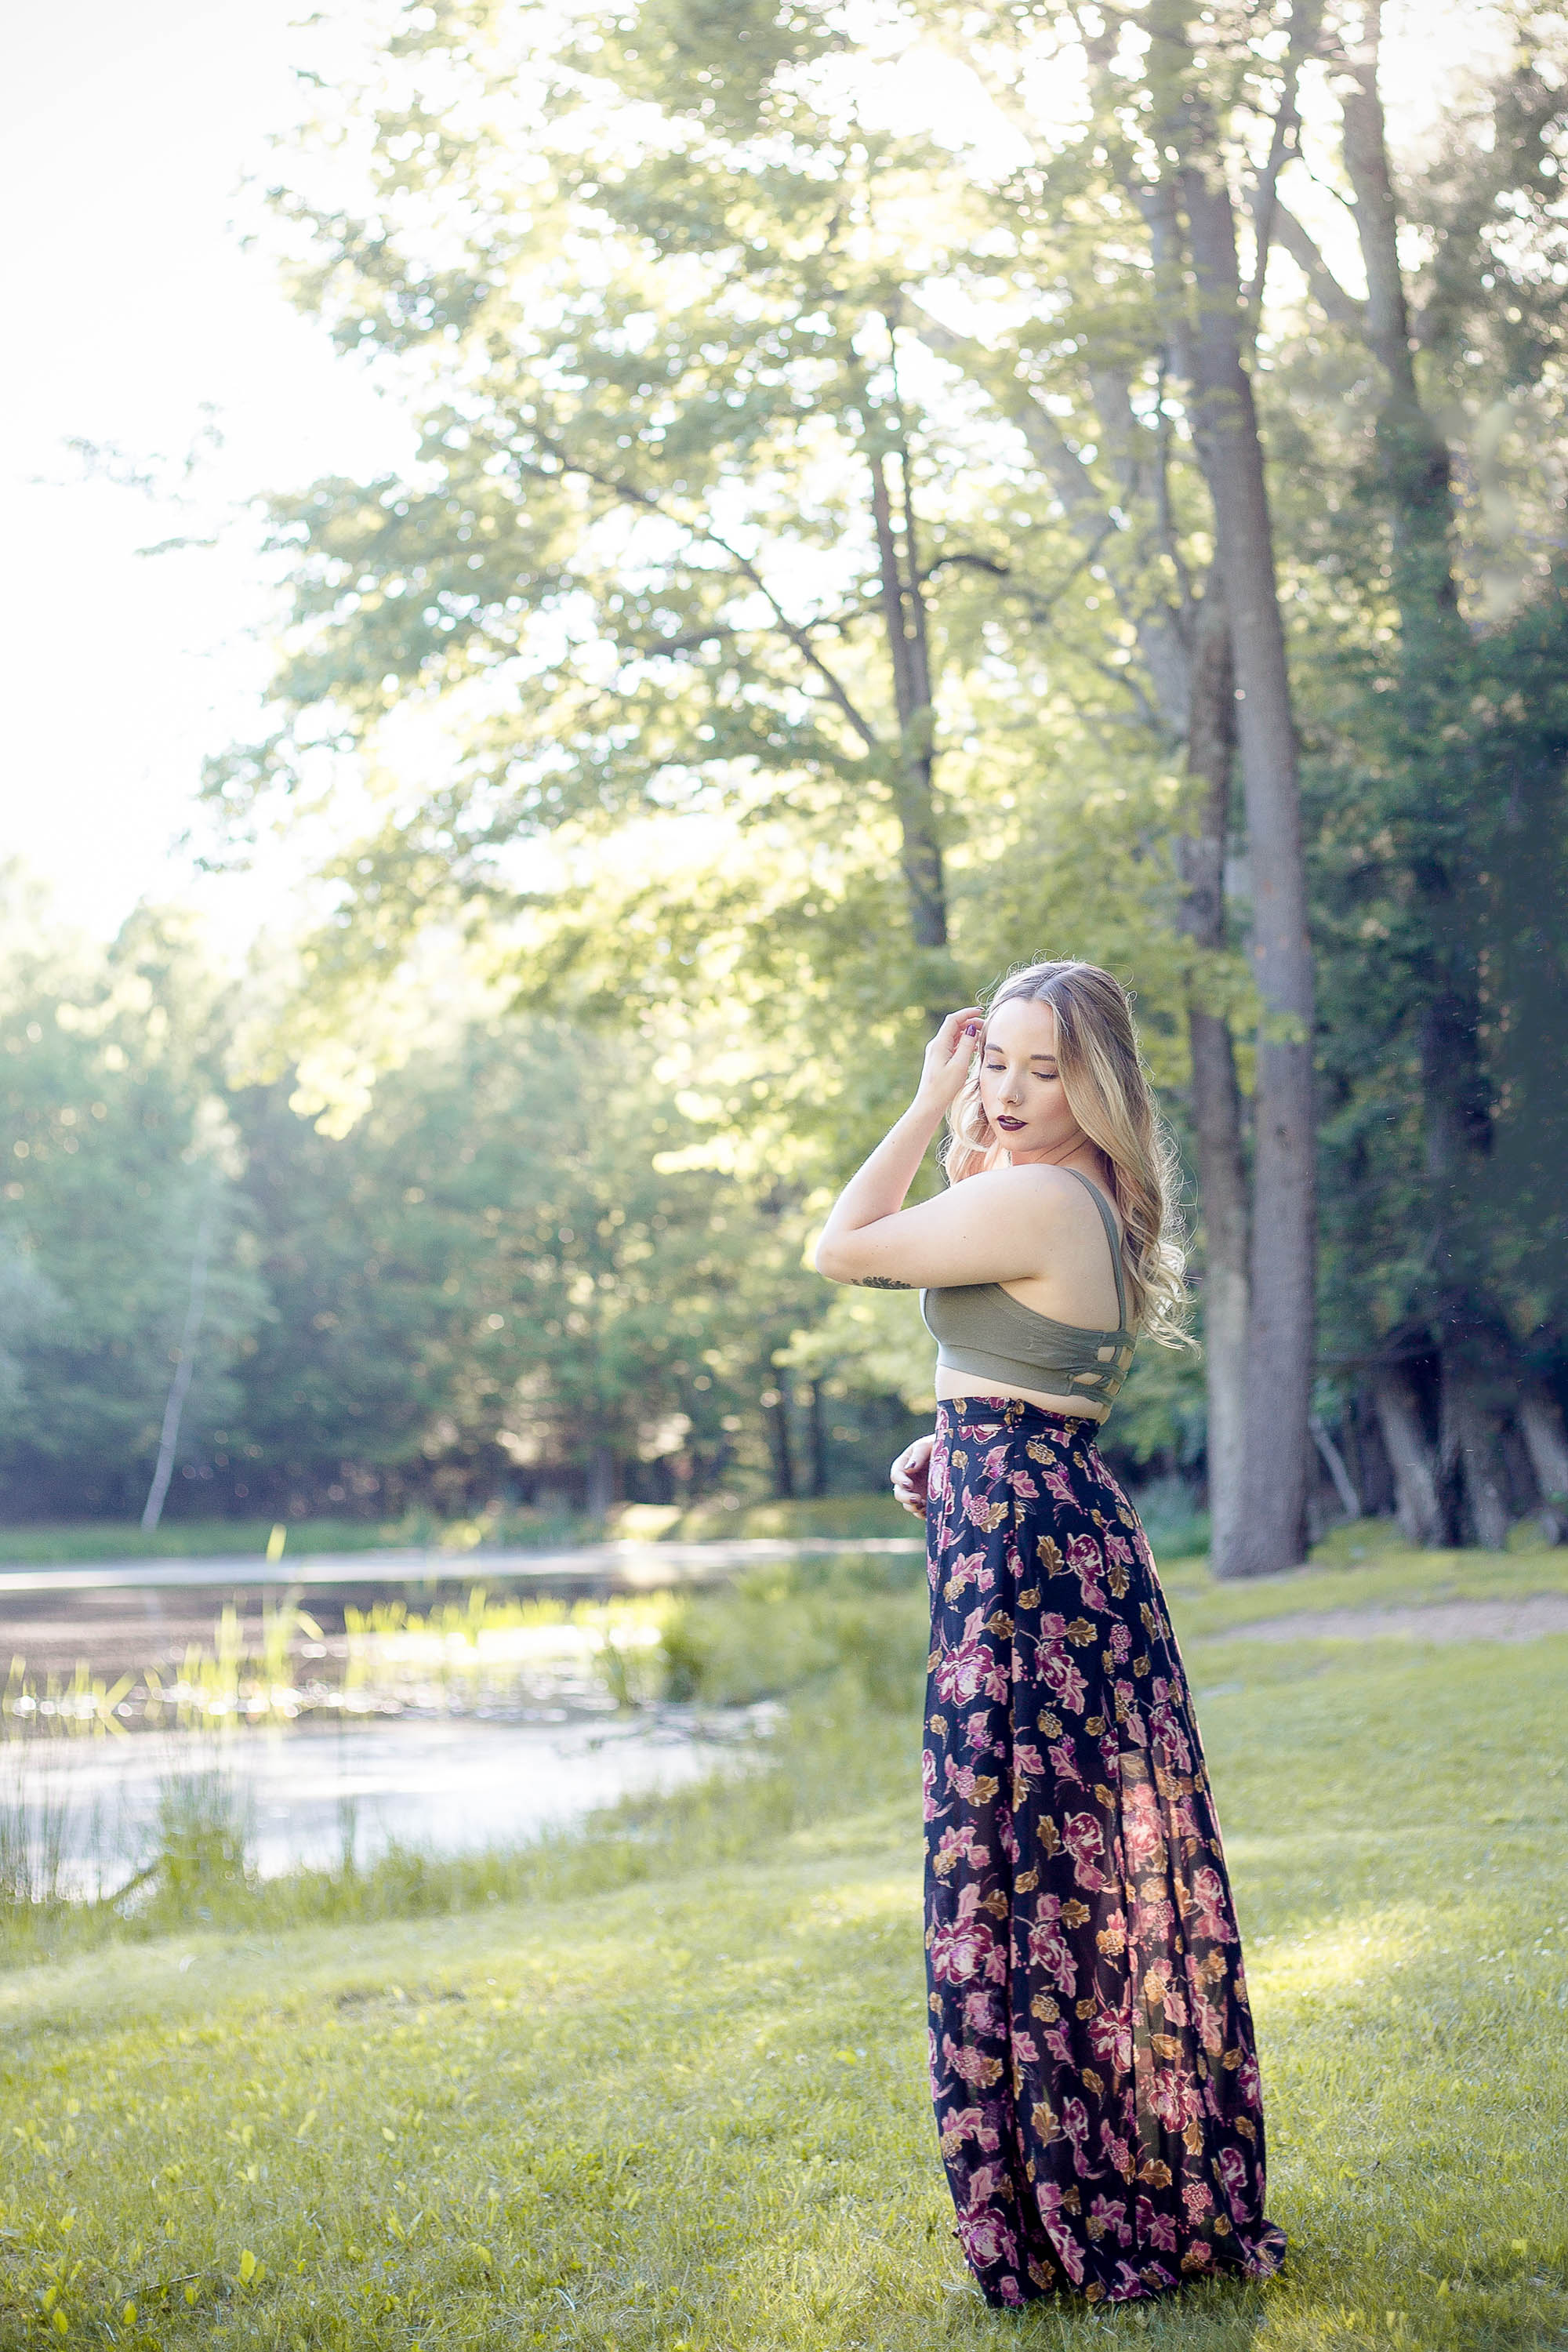 How To Wear A Maxi Skirt If You're Short | Coffee With Summer